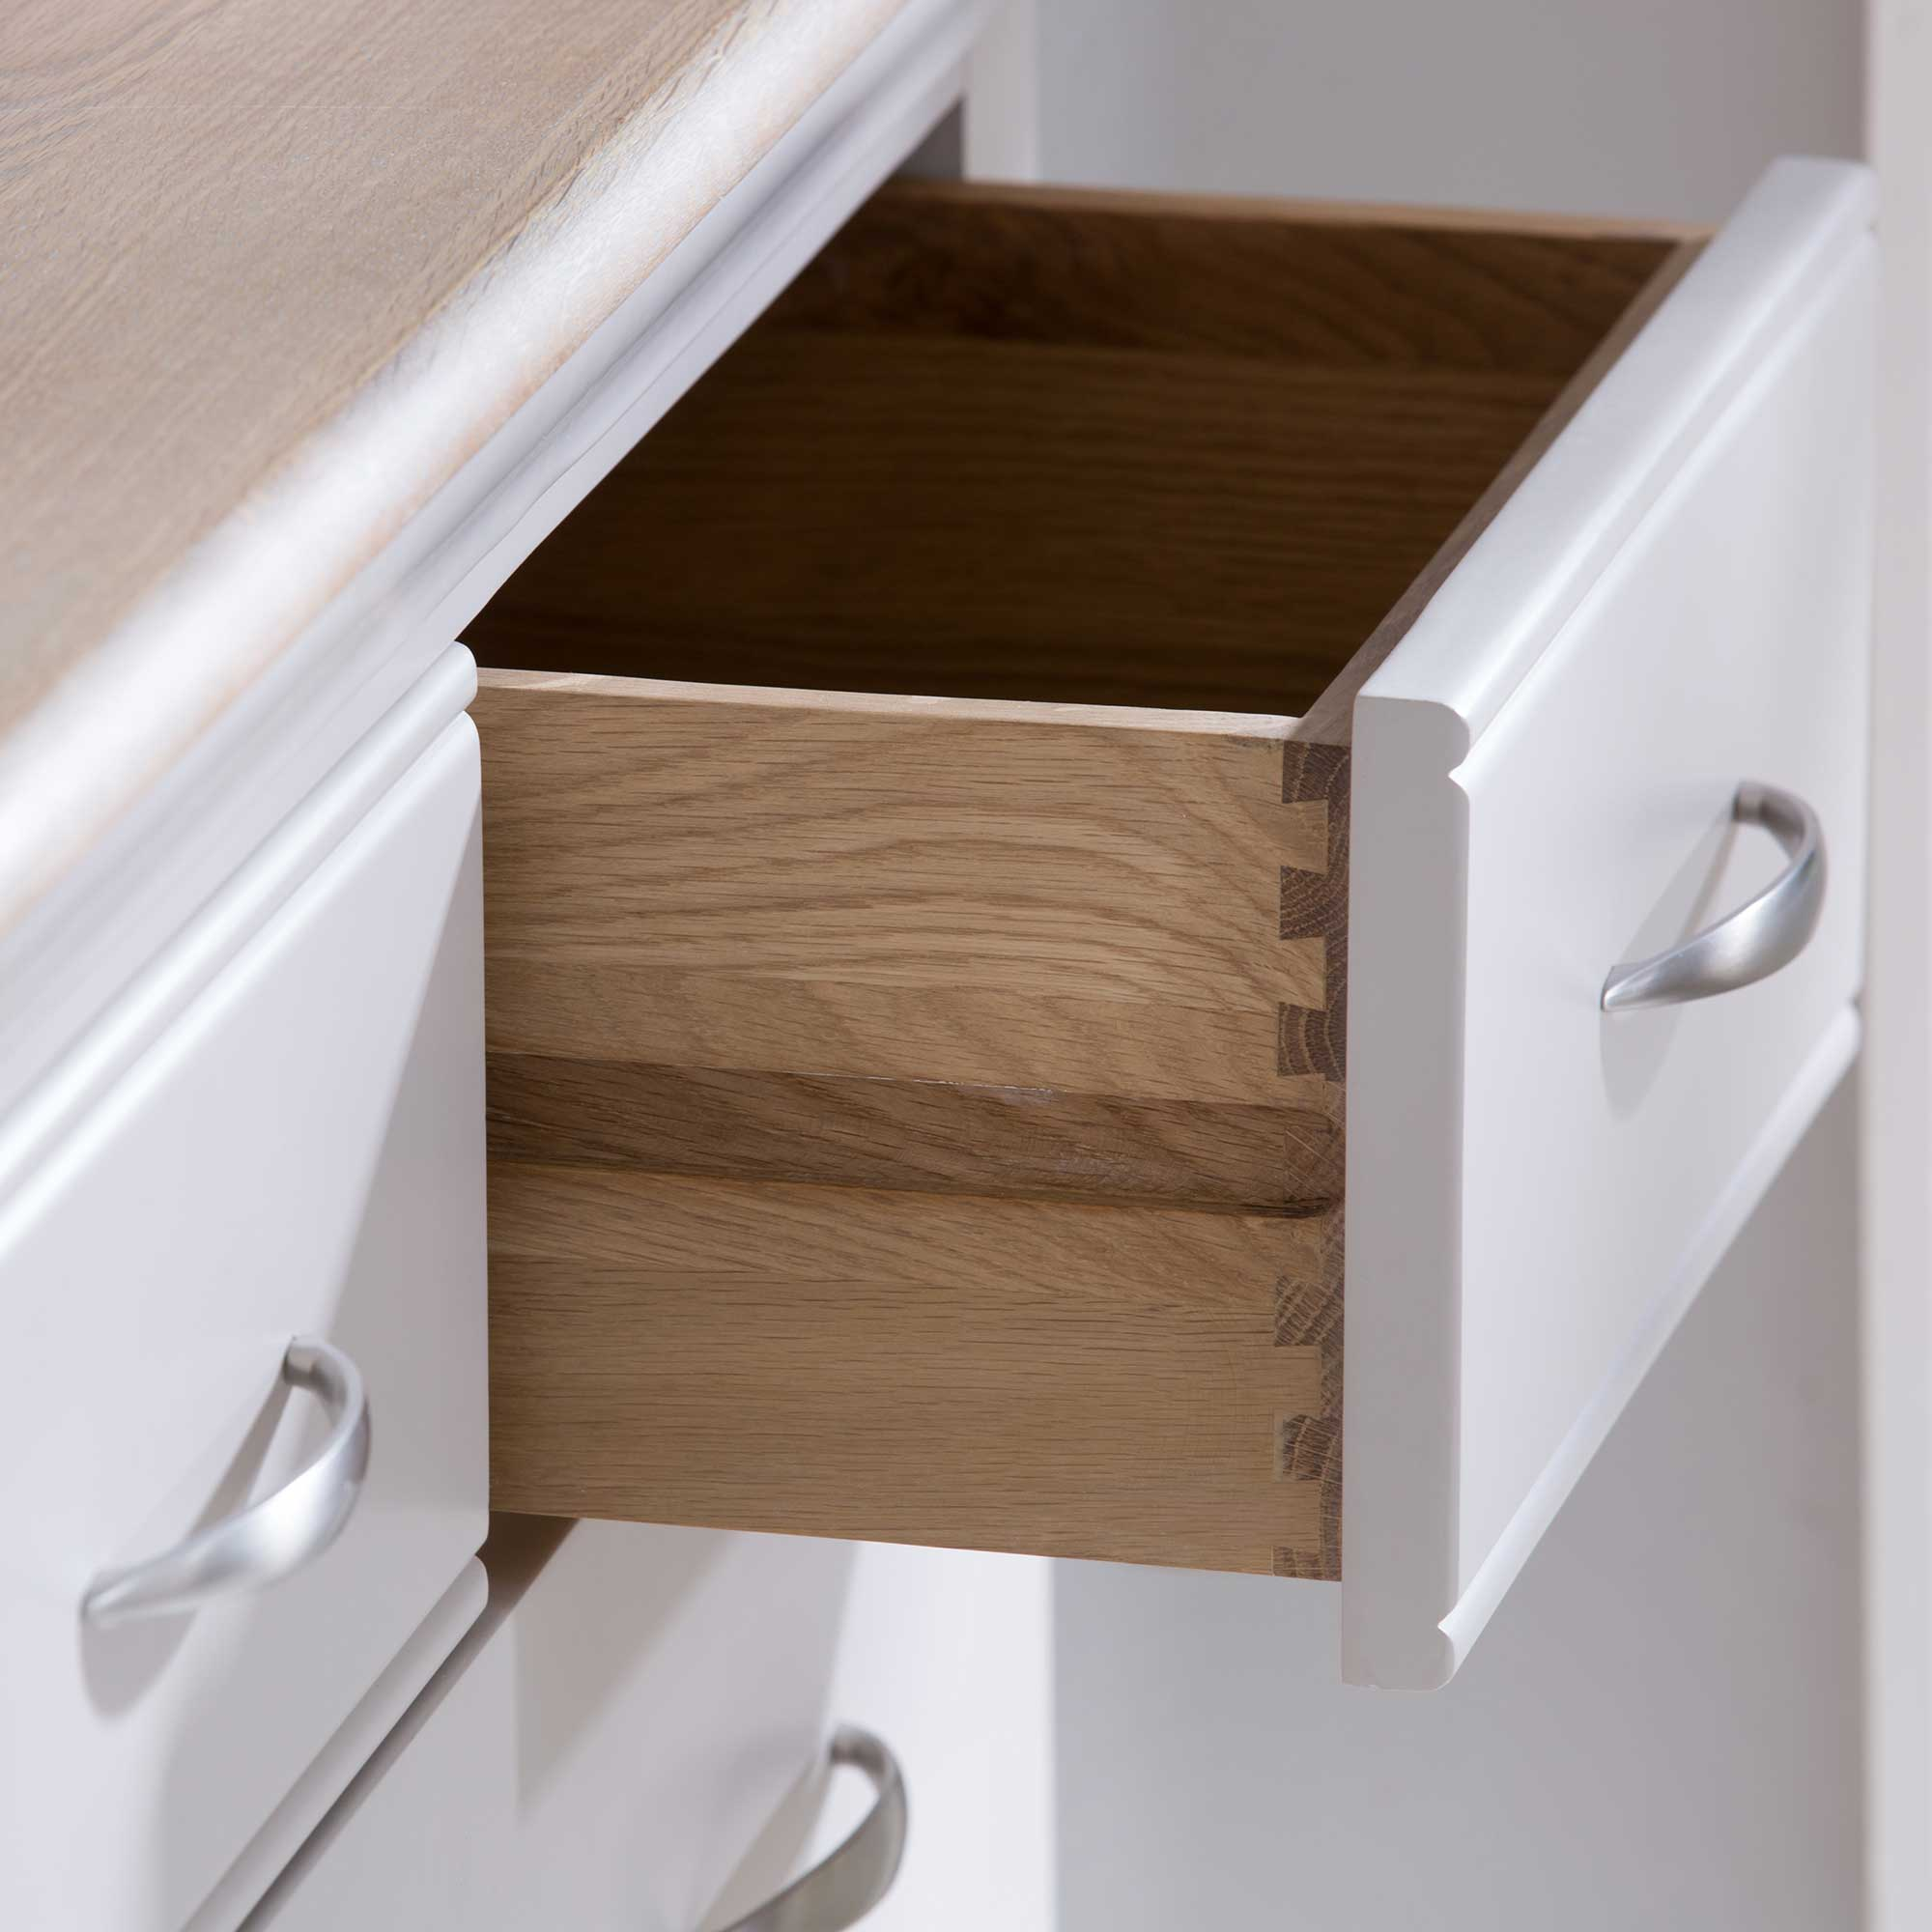 DOVETAIL DRAWER DETAIL..